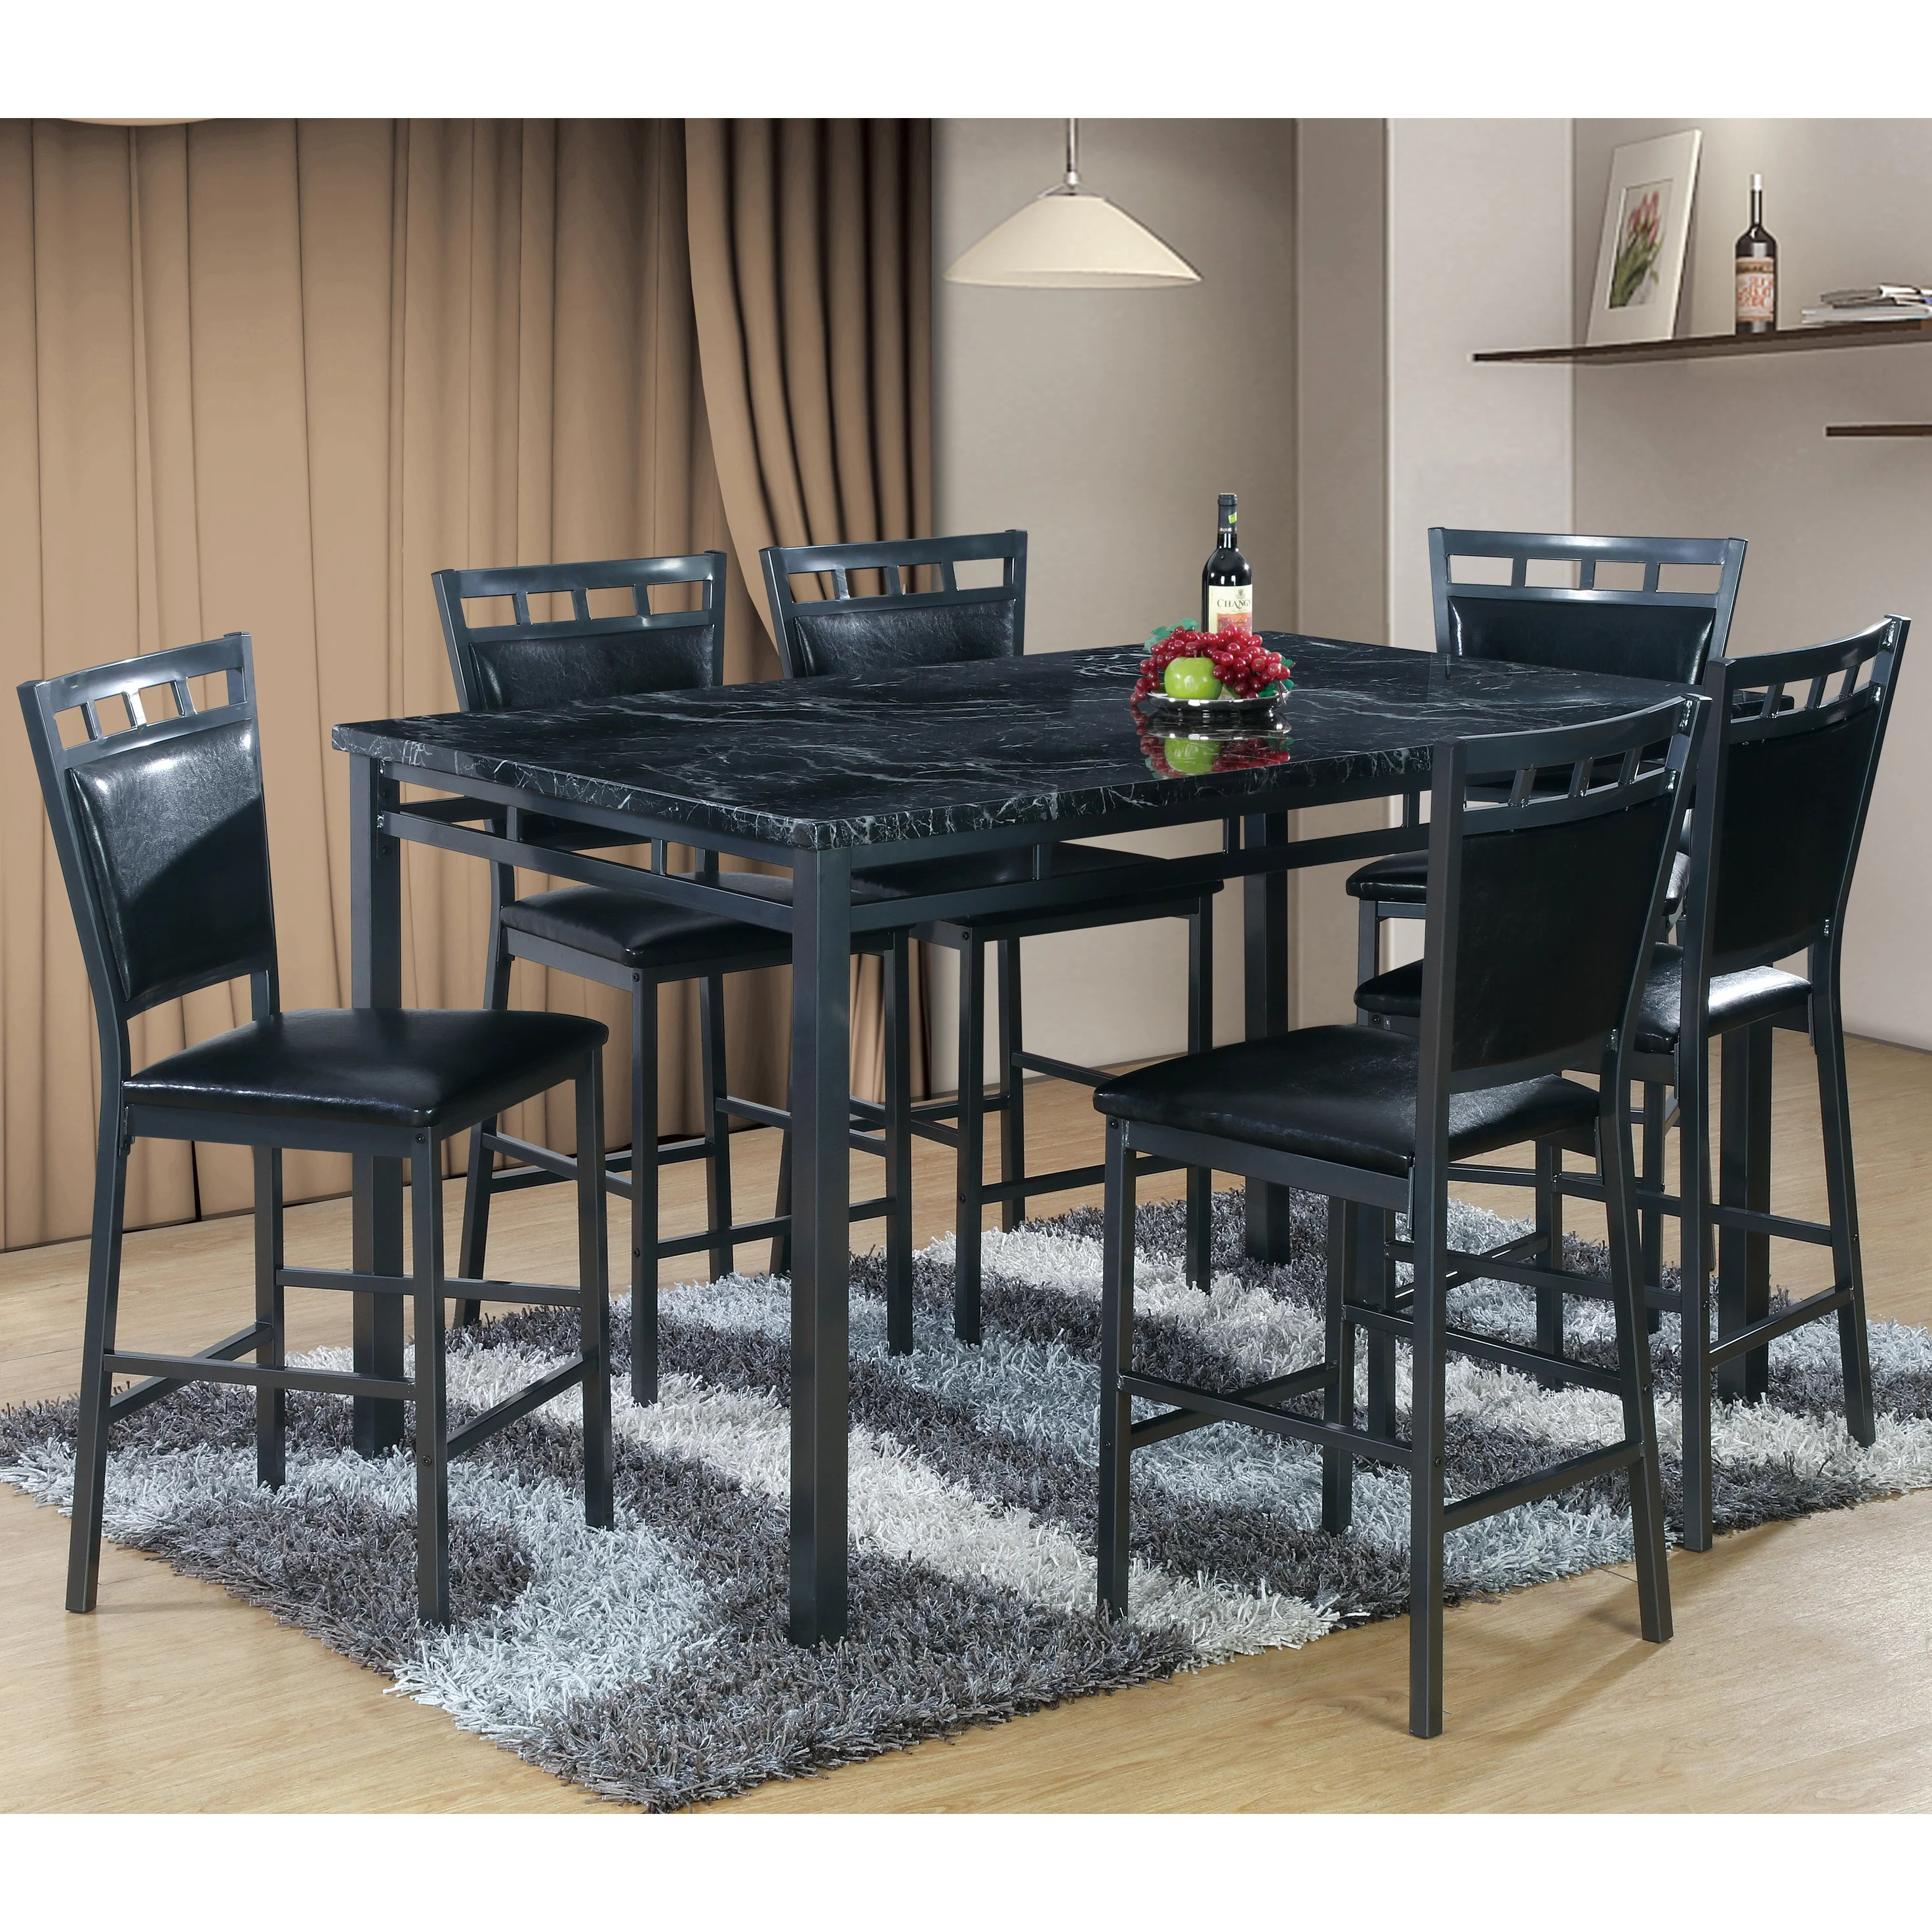 counter height dining sets c counter height kitchen tables 7 Piece Counter Height Dining Table Set